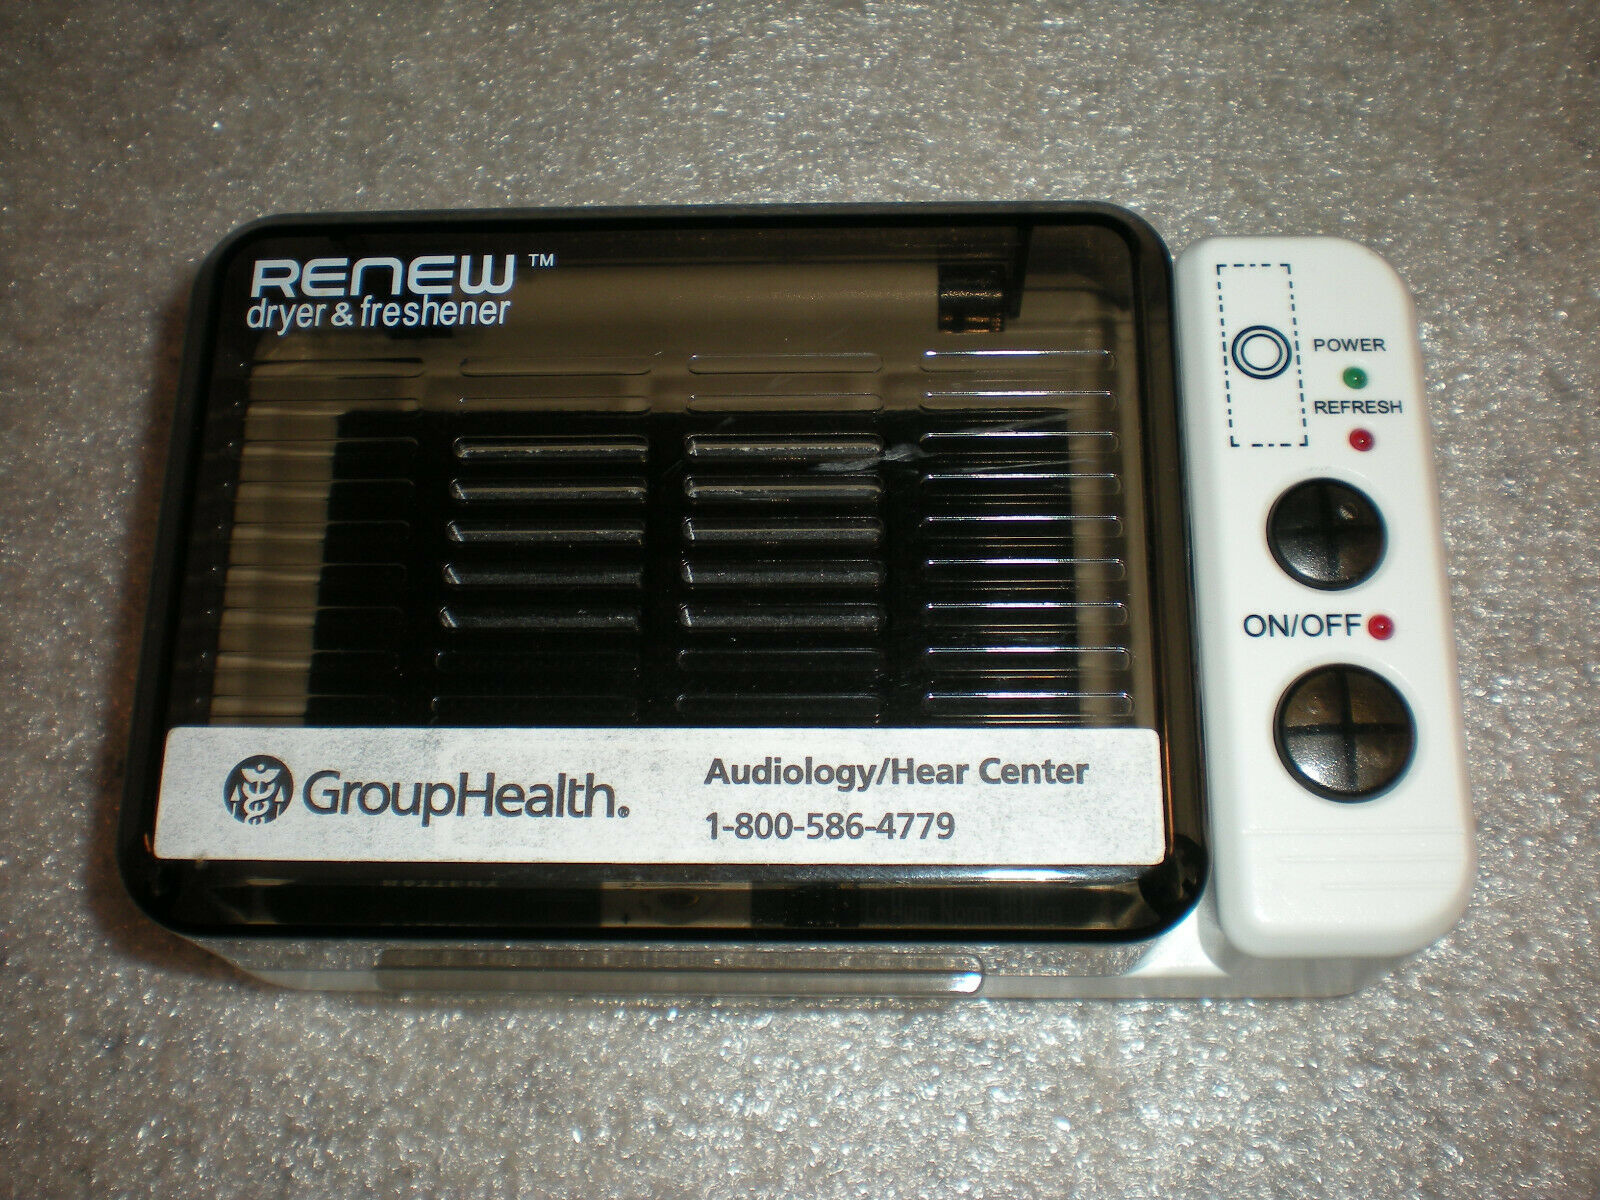 Serene Renew Innovations DB-100 Hearing Aid Dryer and Freshener ONLY NO ADAPTER